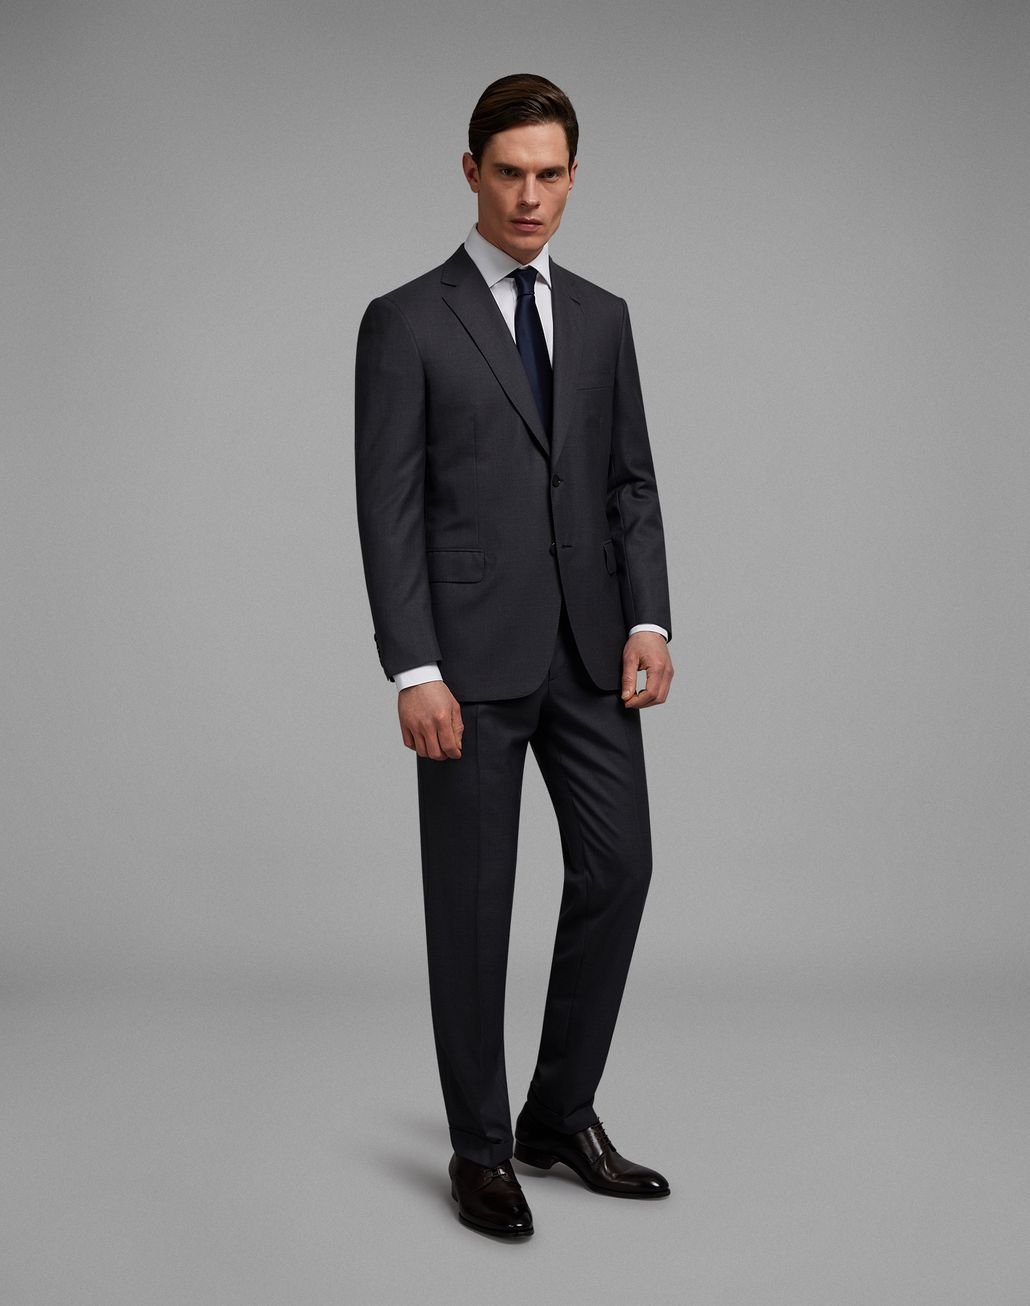 BRIONI Charcoal Brunico Suit Suits & Jackets U r